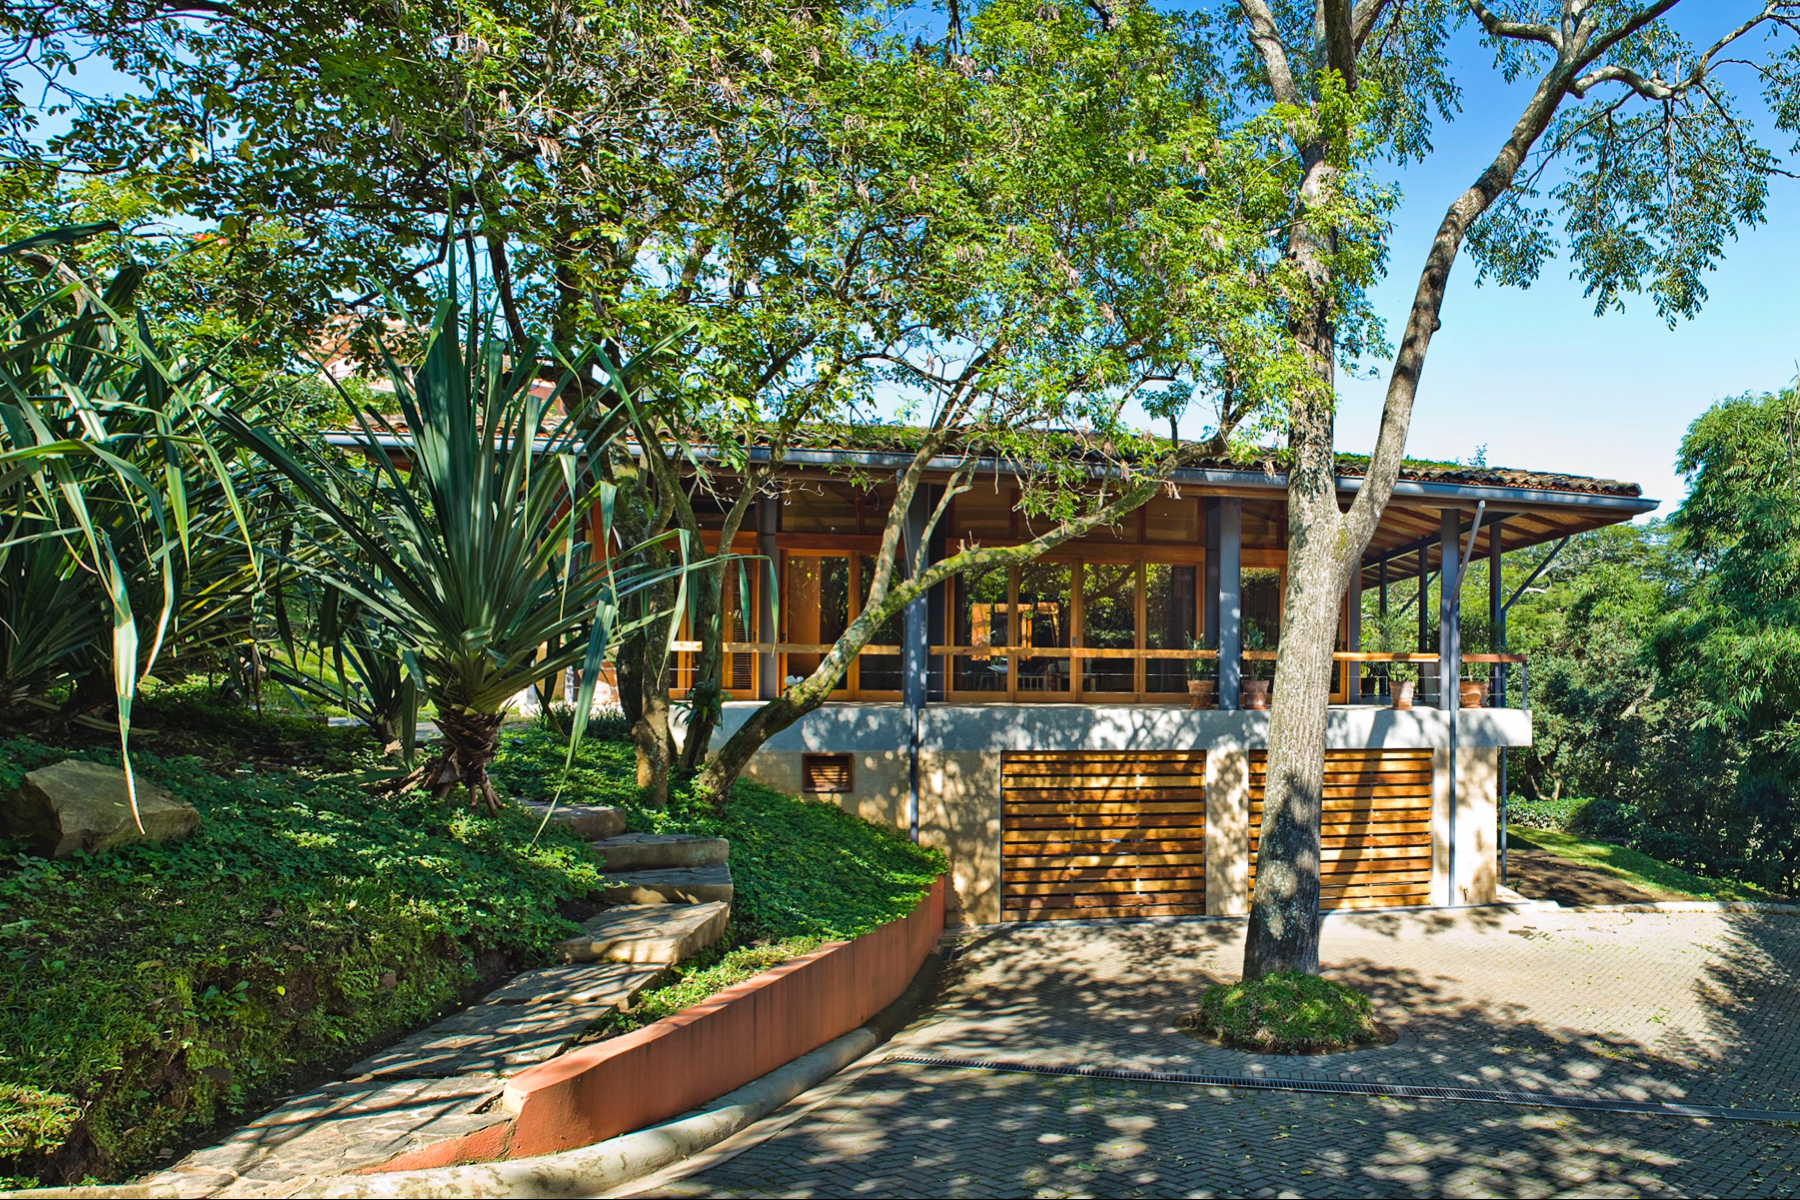 Single Family Homes for Sale at Forest View Villa Real Santa Ana, San Jose Costa Rica